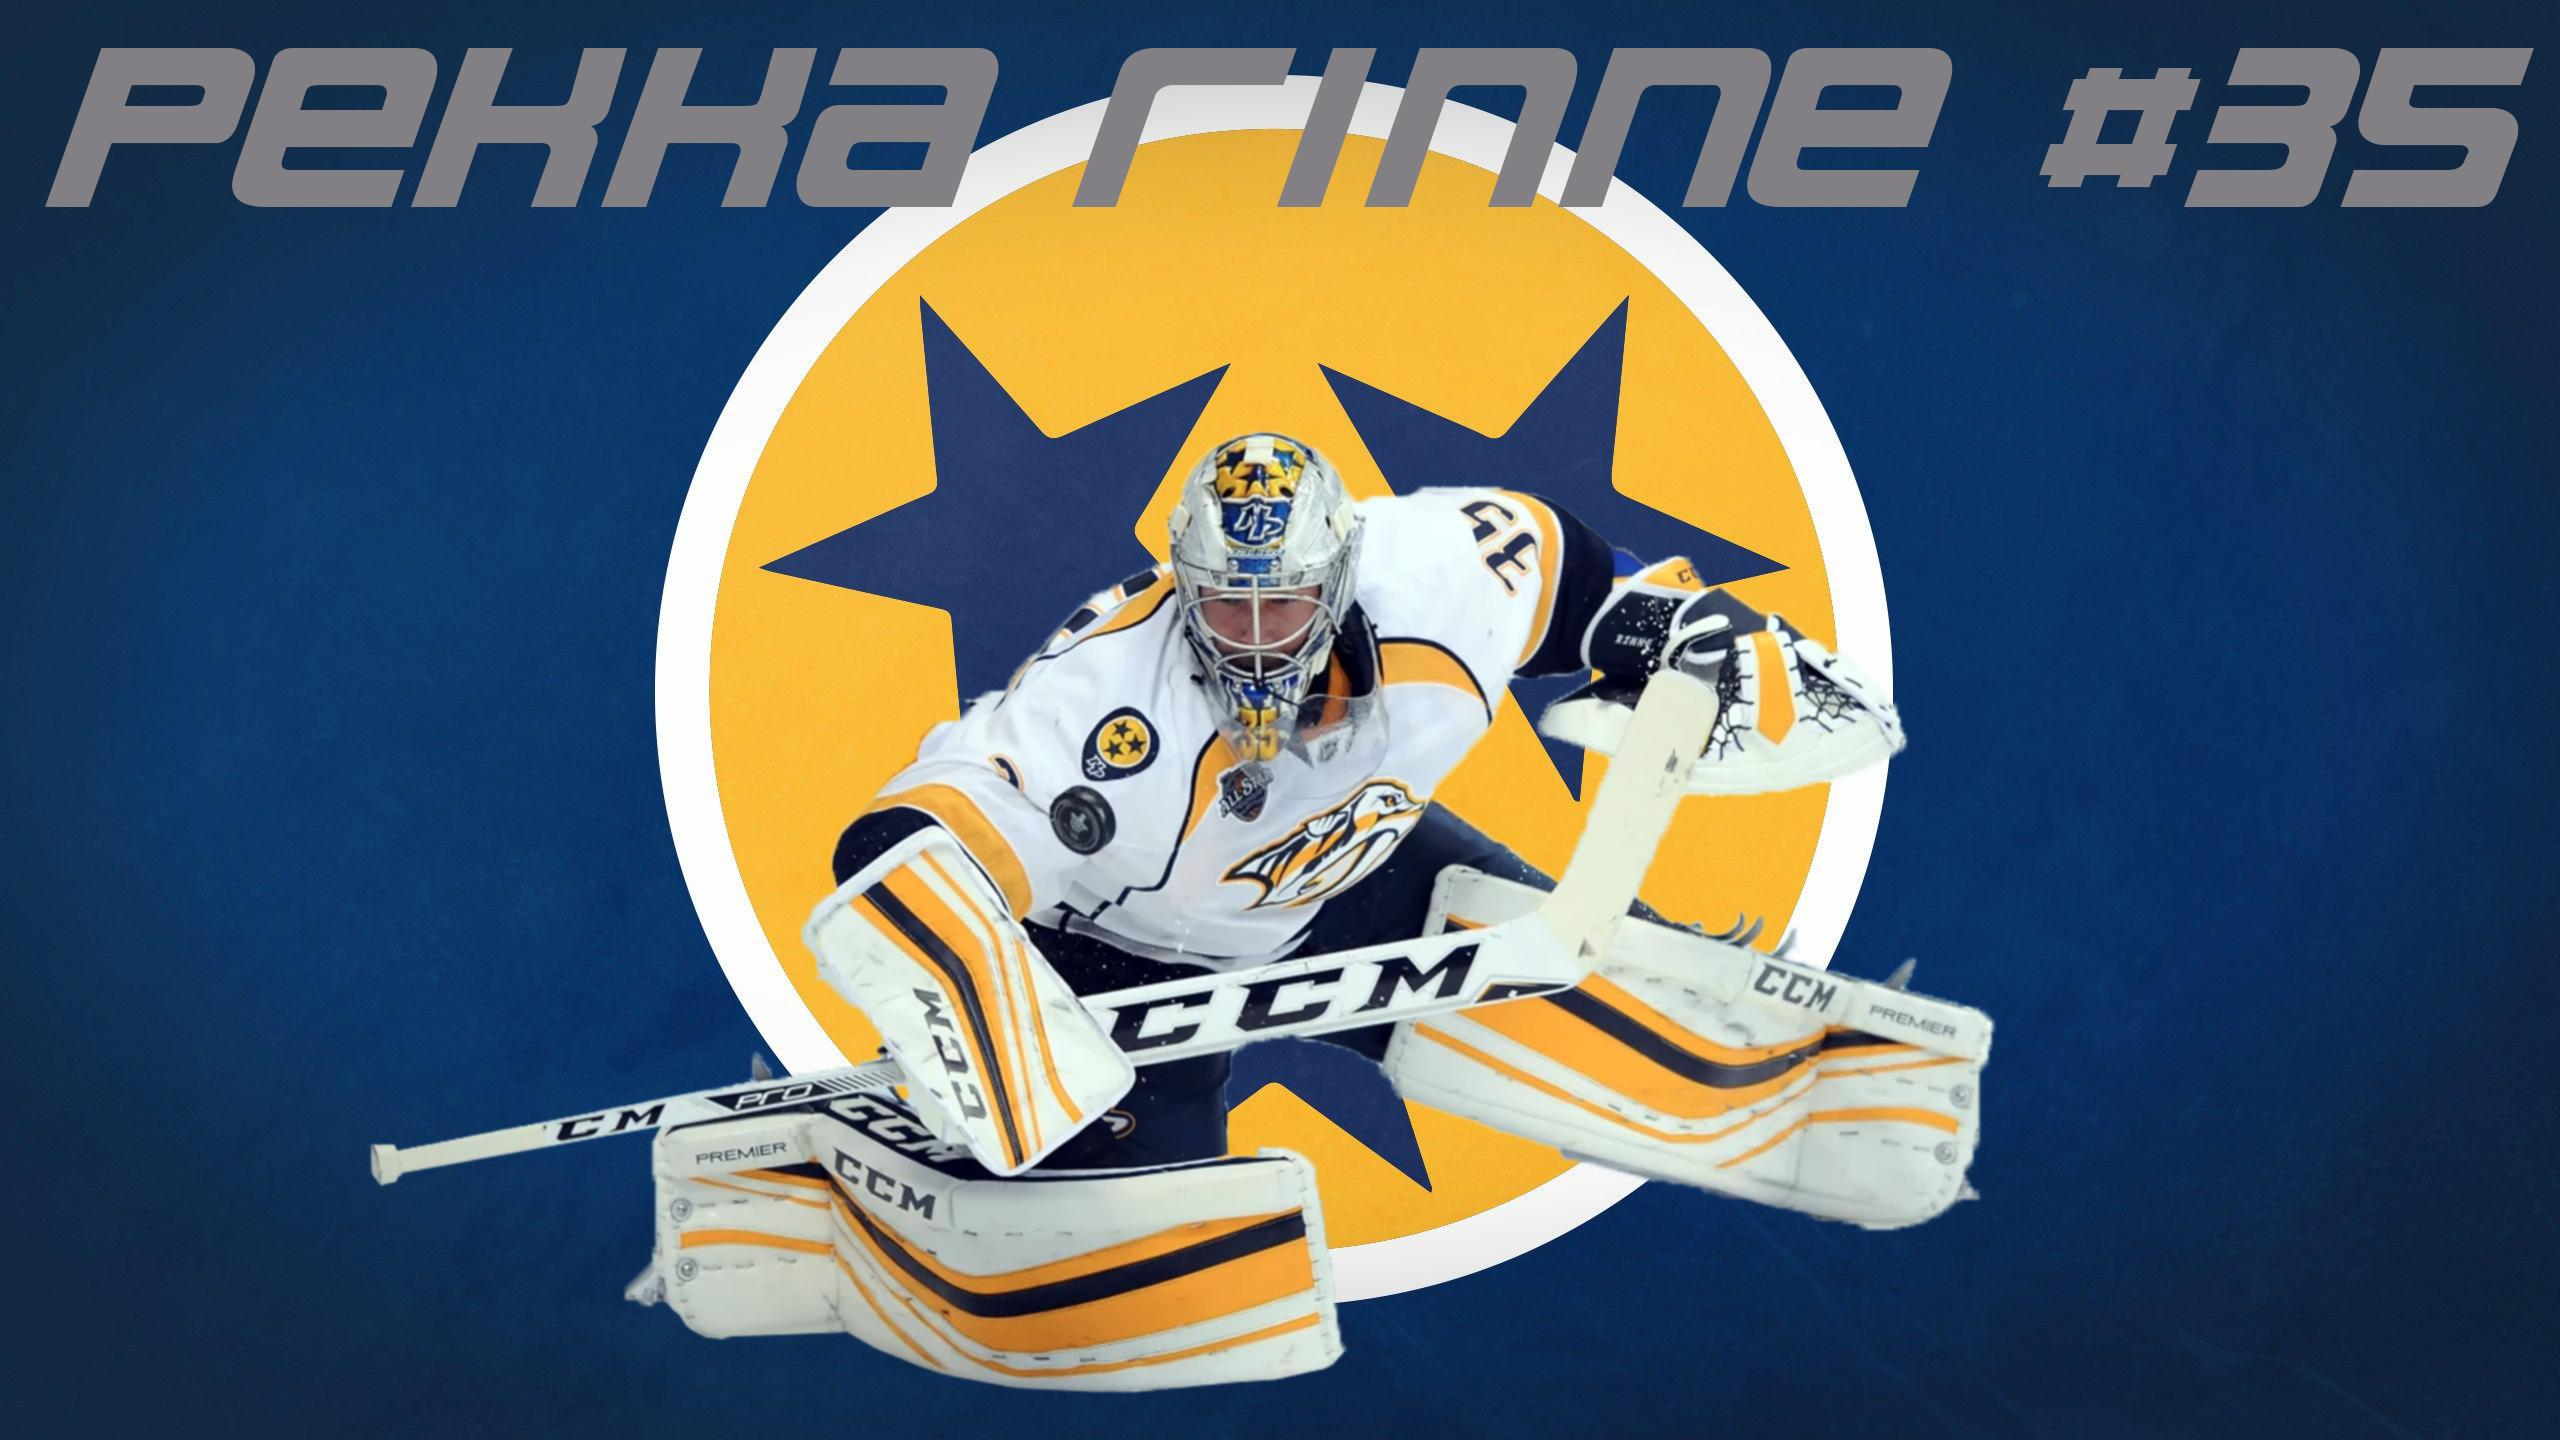 Pekka Rinne Wallpaper] New to PS, Would Like: Critiques/Tips